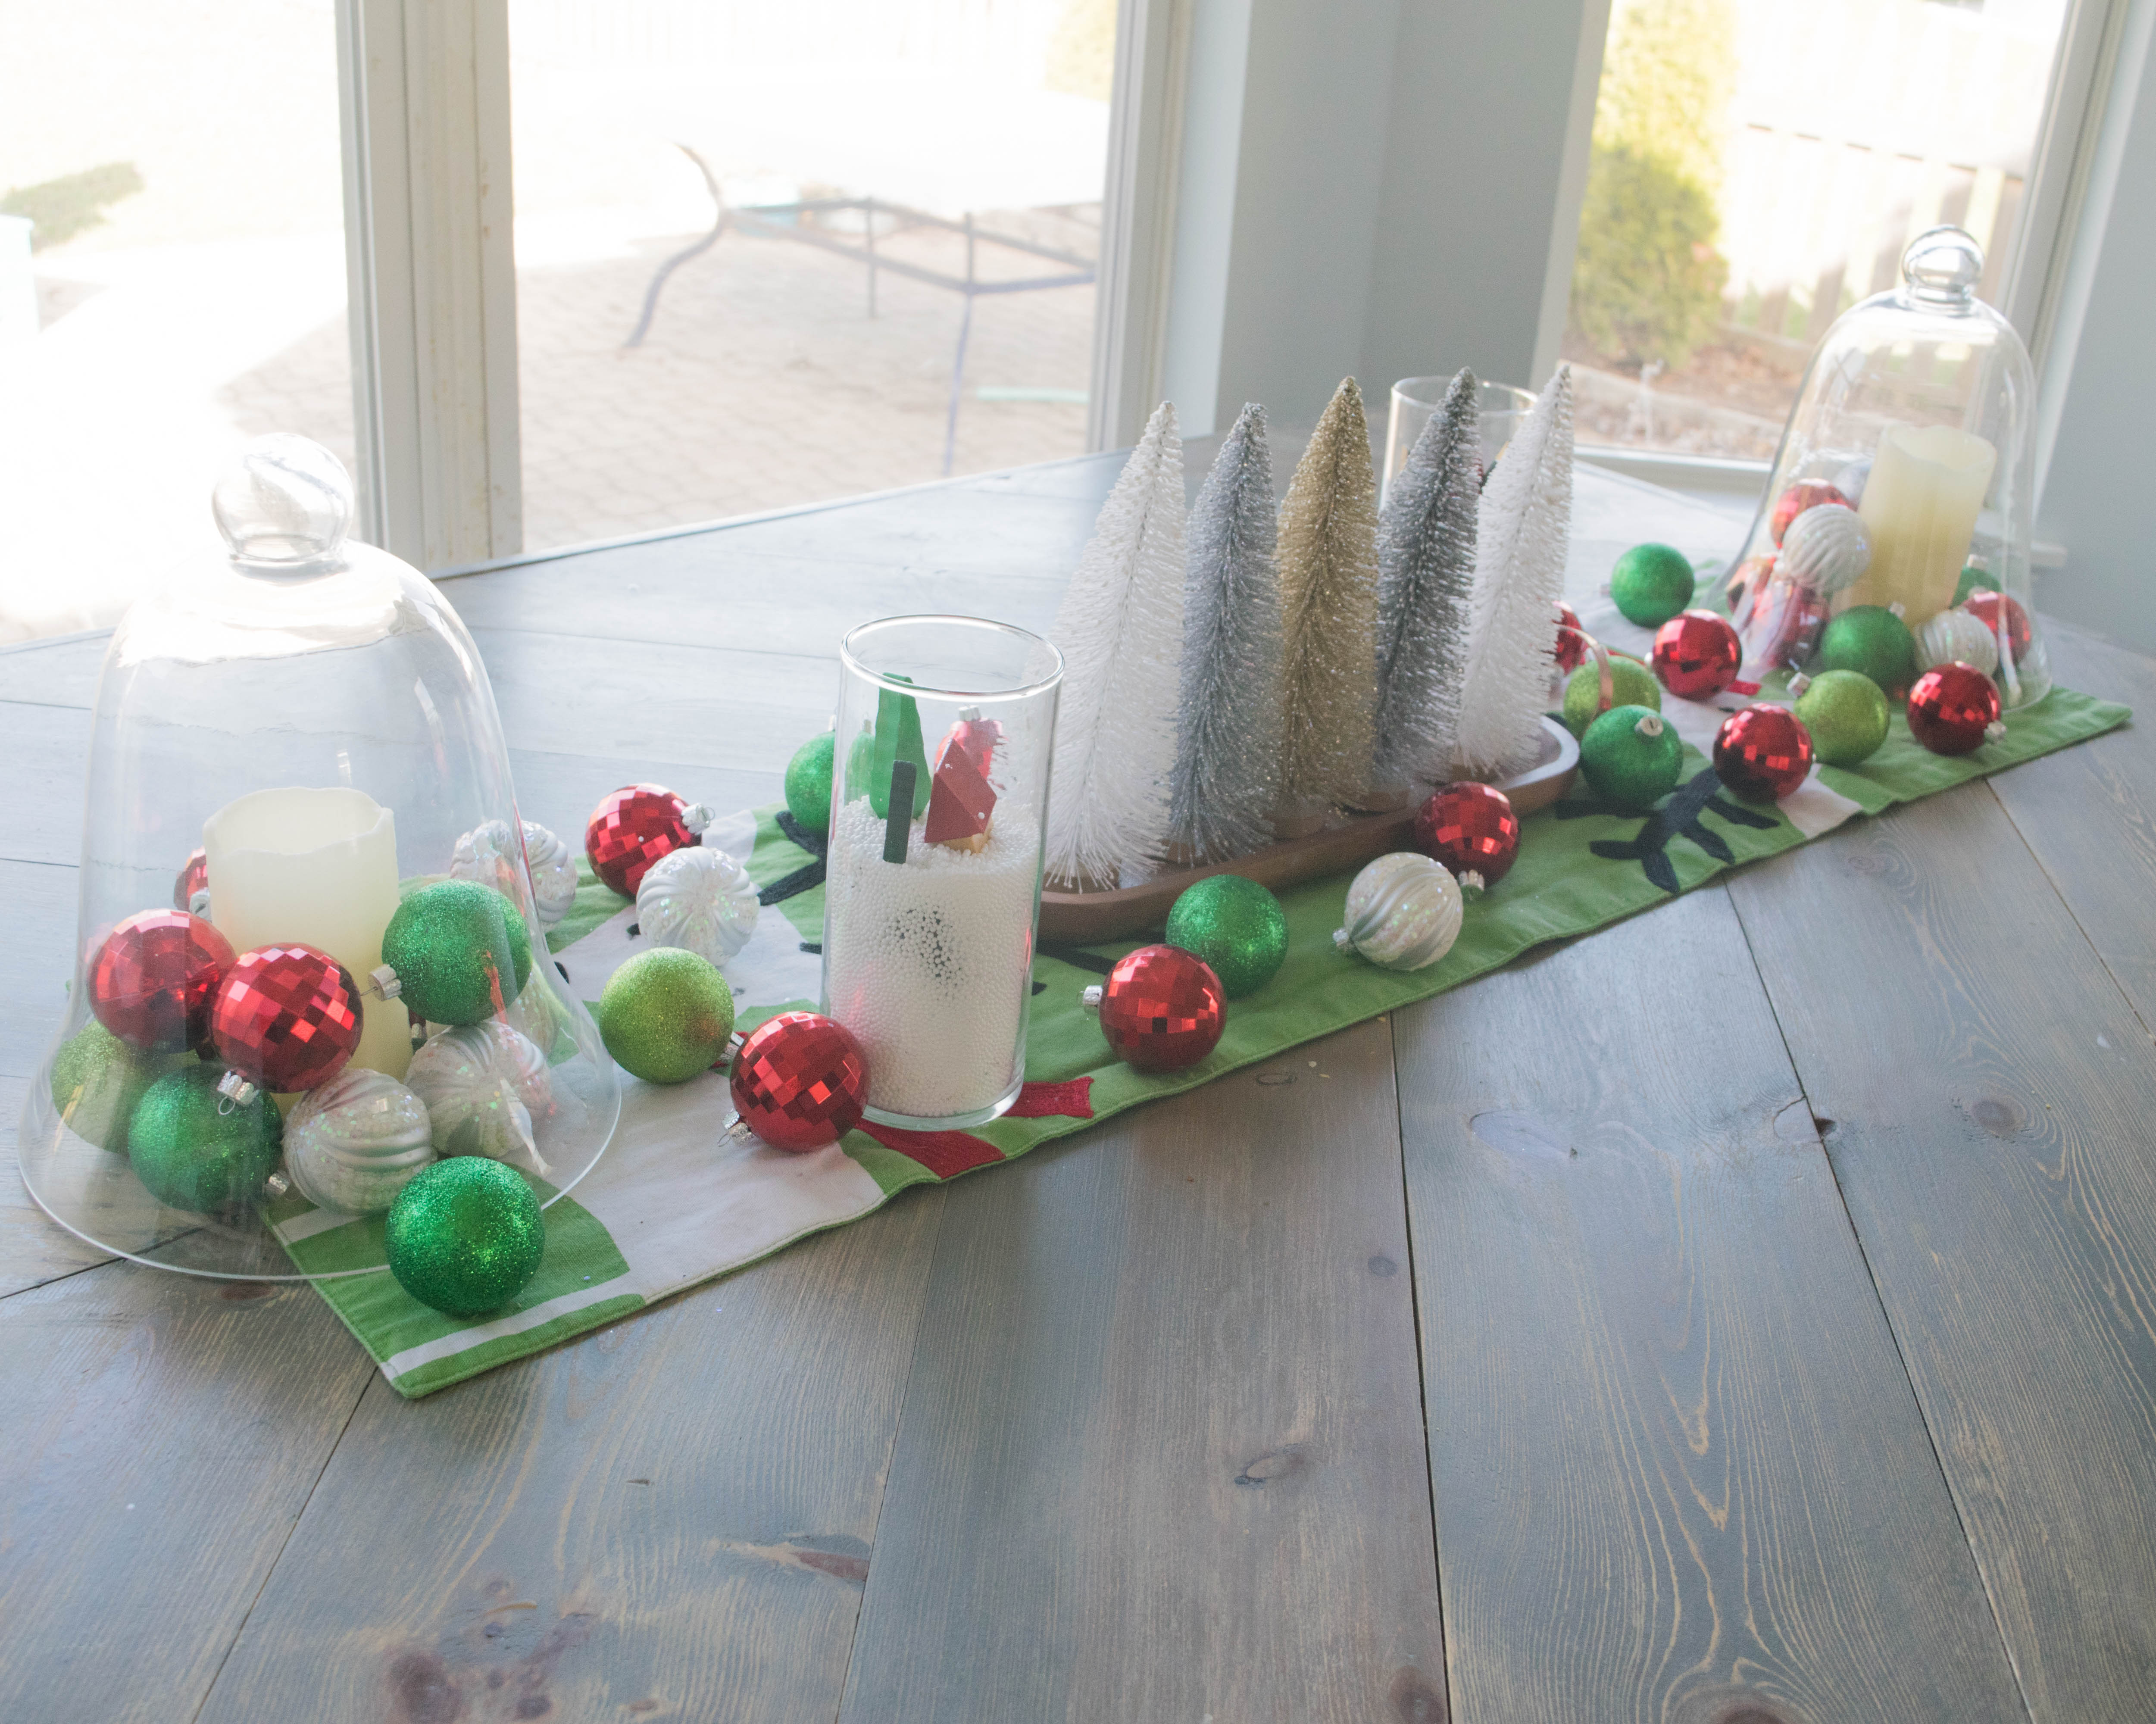 Whimsical holiday table decor ideas 1 of 1 our house for Whimsical decor